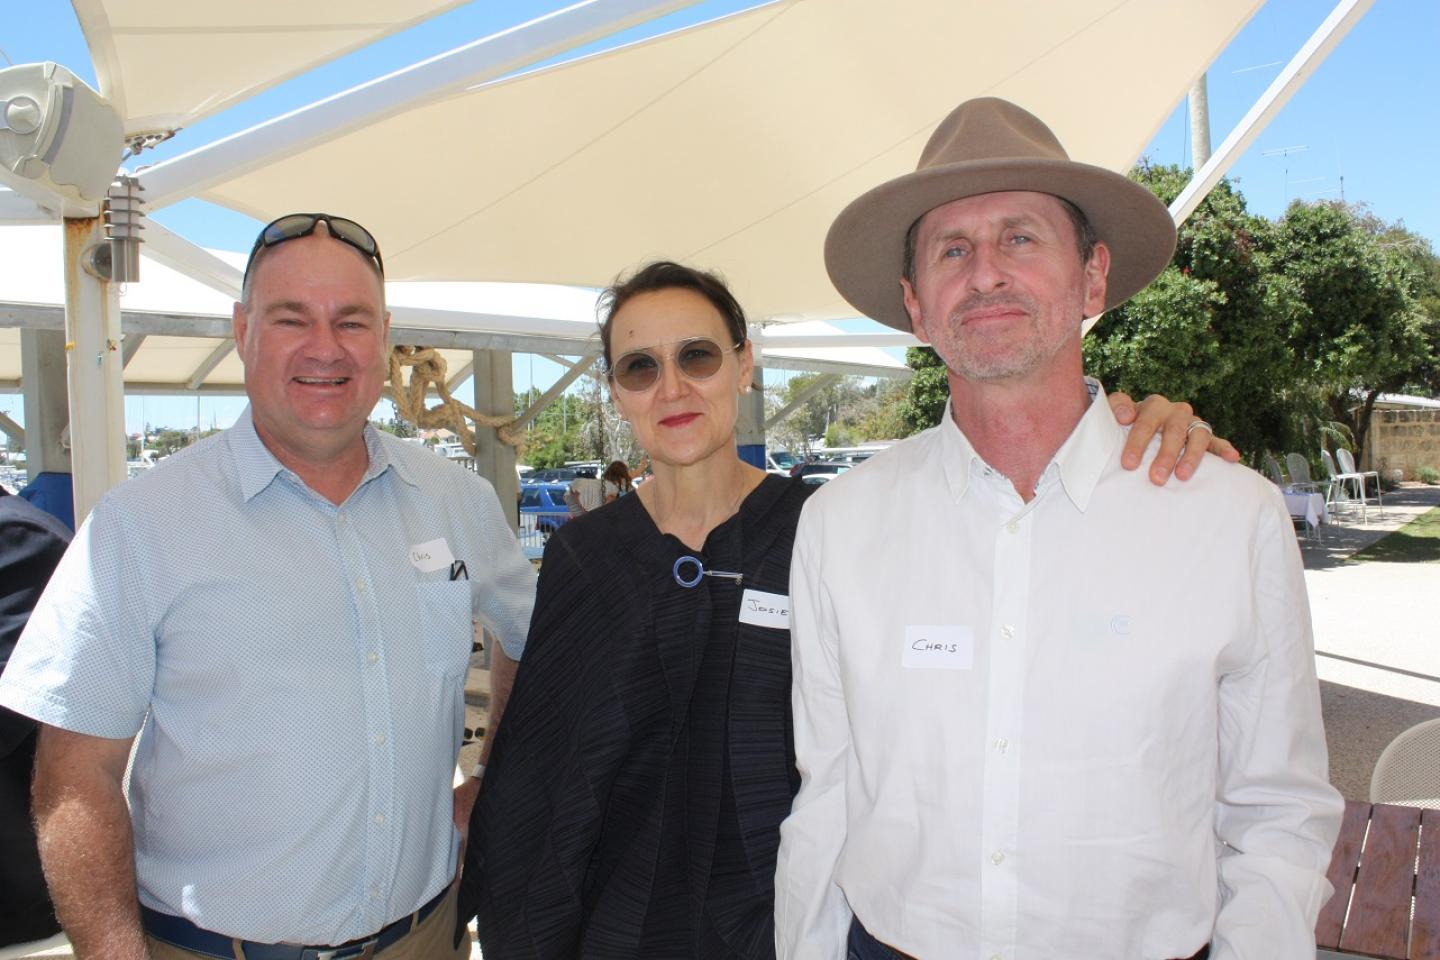 Ausplow general manager Chris Farmer (left) and marketing and sales manager Chris Blight flank Chris Blight's partner Josianne 'Josie' Sabouriaut.